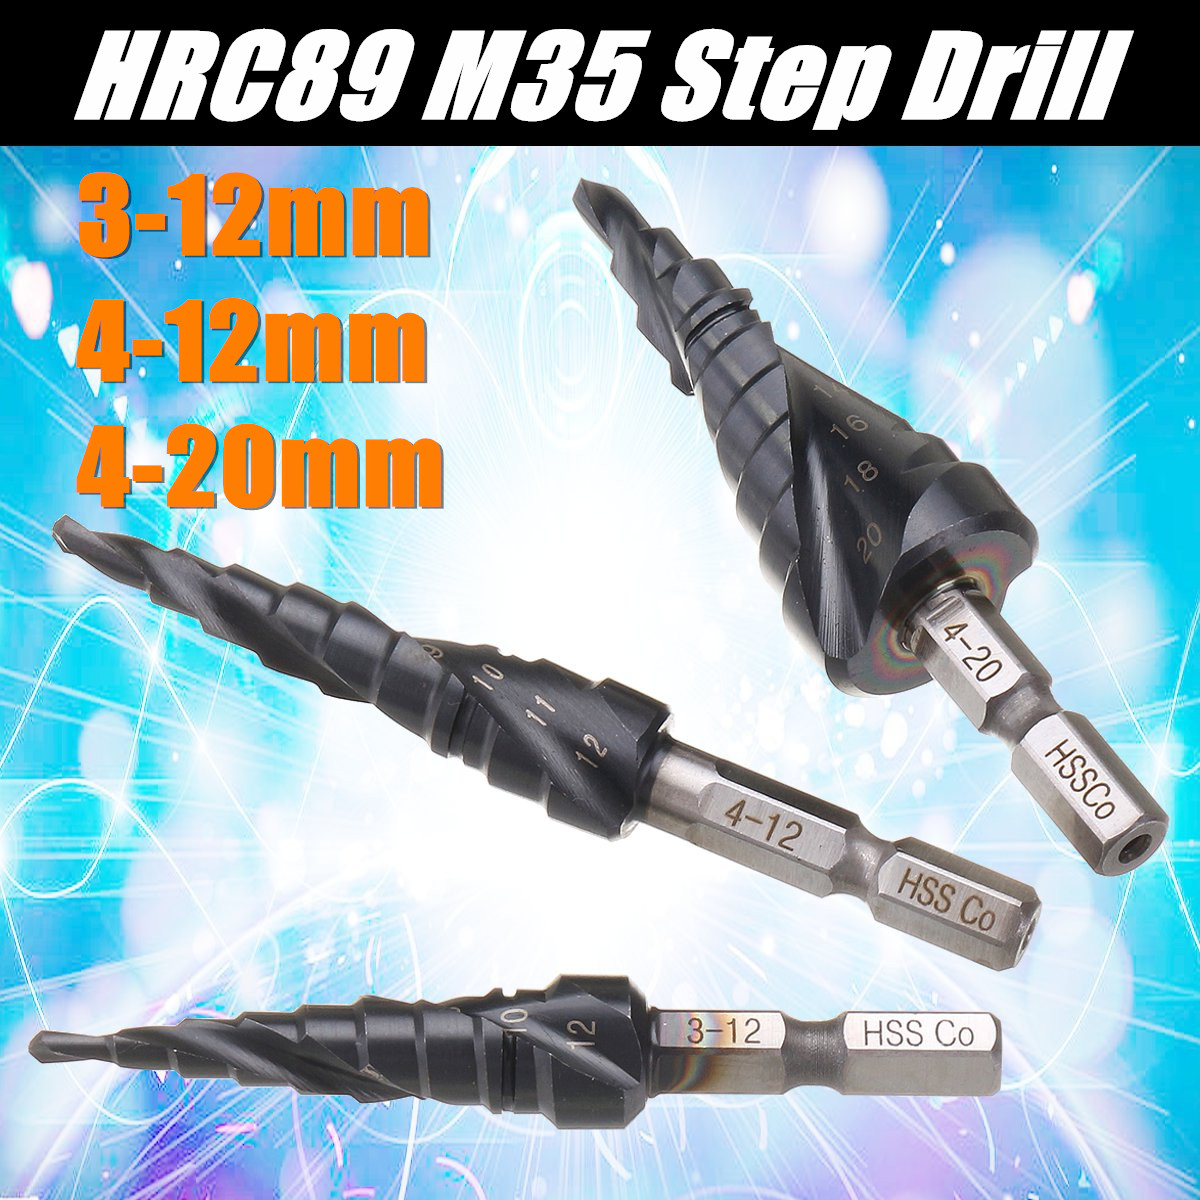 Drillpro HRC89 HSS-Co M35 Cobalt Step Drill Bit 3-12/4-12/4-20mm TiAlN Coated Step Drill 1/4 Inch Hex Shank Woodworking Bits